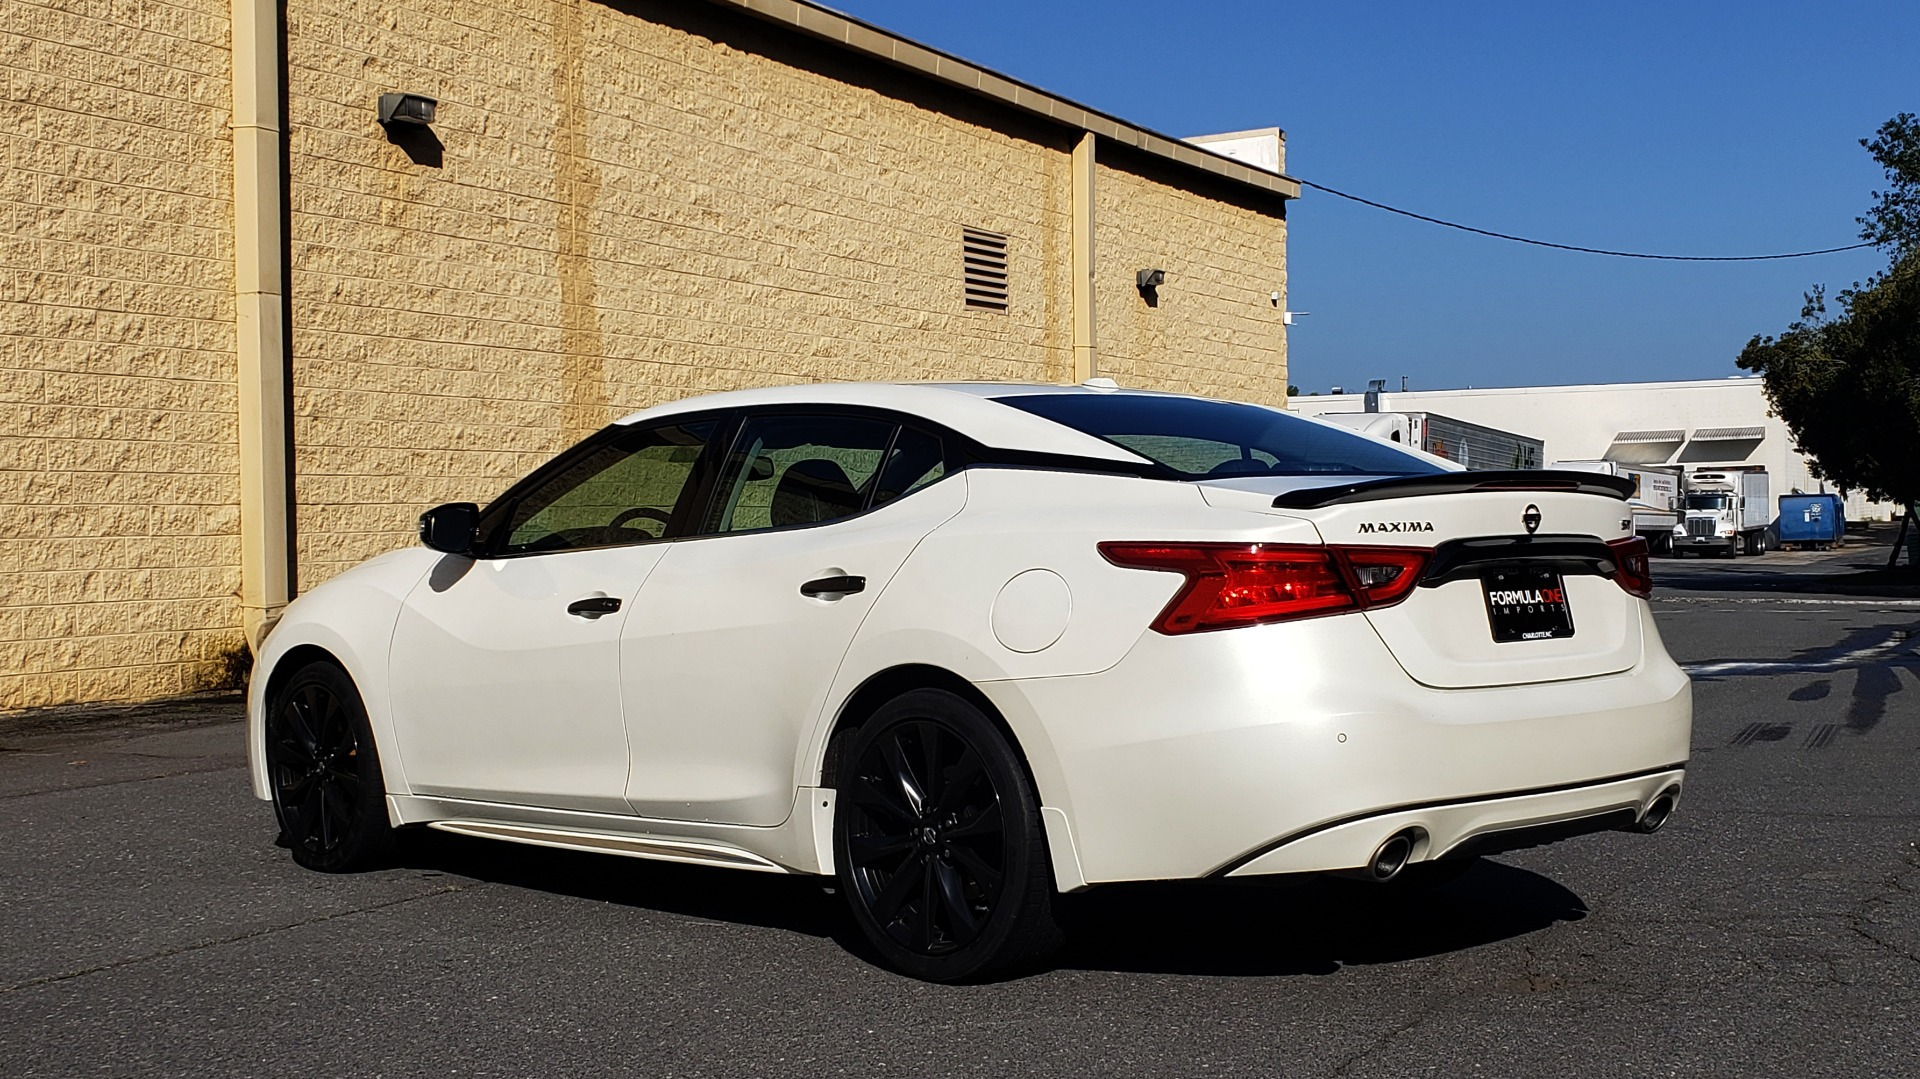 Used 2016 Nissan MAXIMA 3.5 SR / NAV / BOSE / VENT STS / CVT / REARVIEW for sale Sold at Formula Imports in Charlotte NC 28227 3